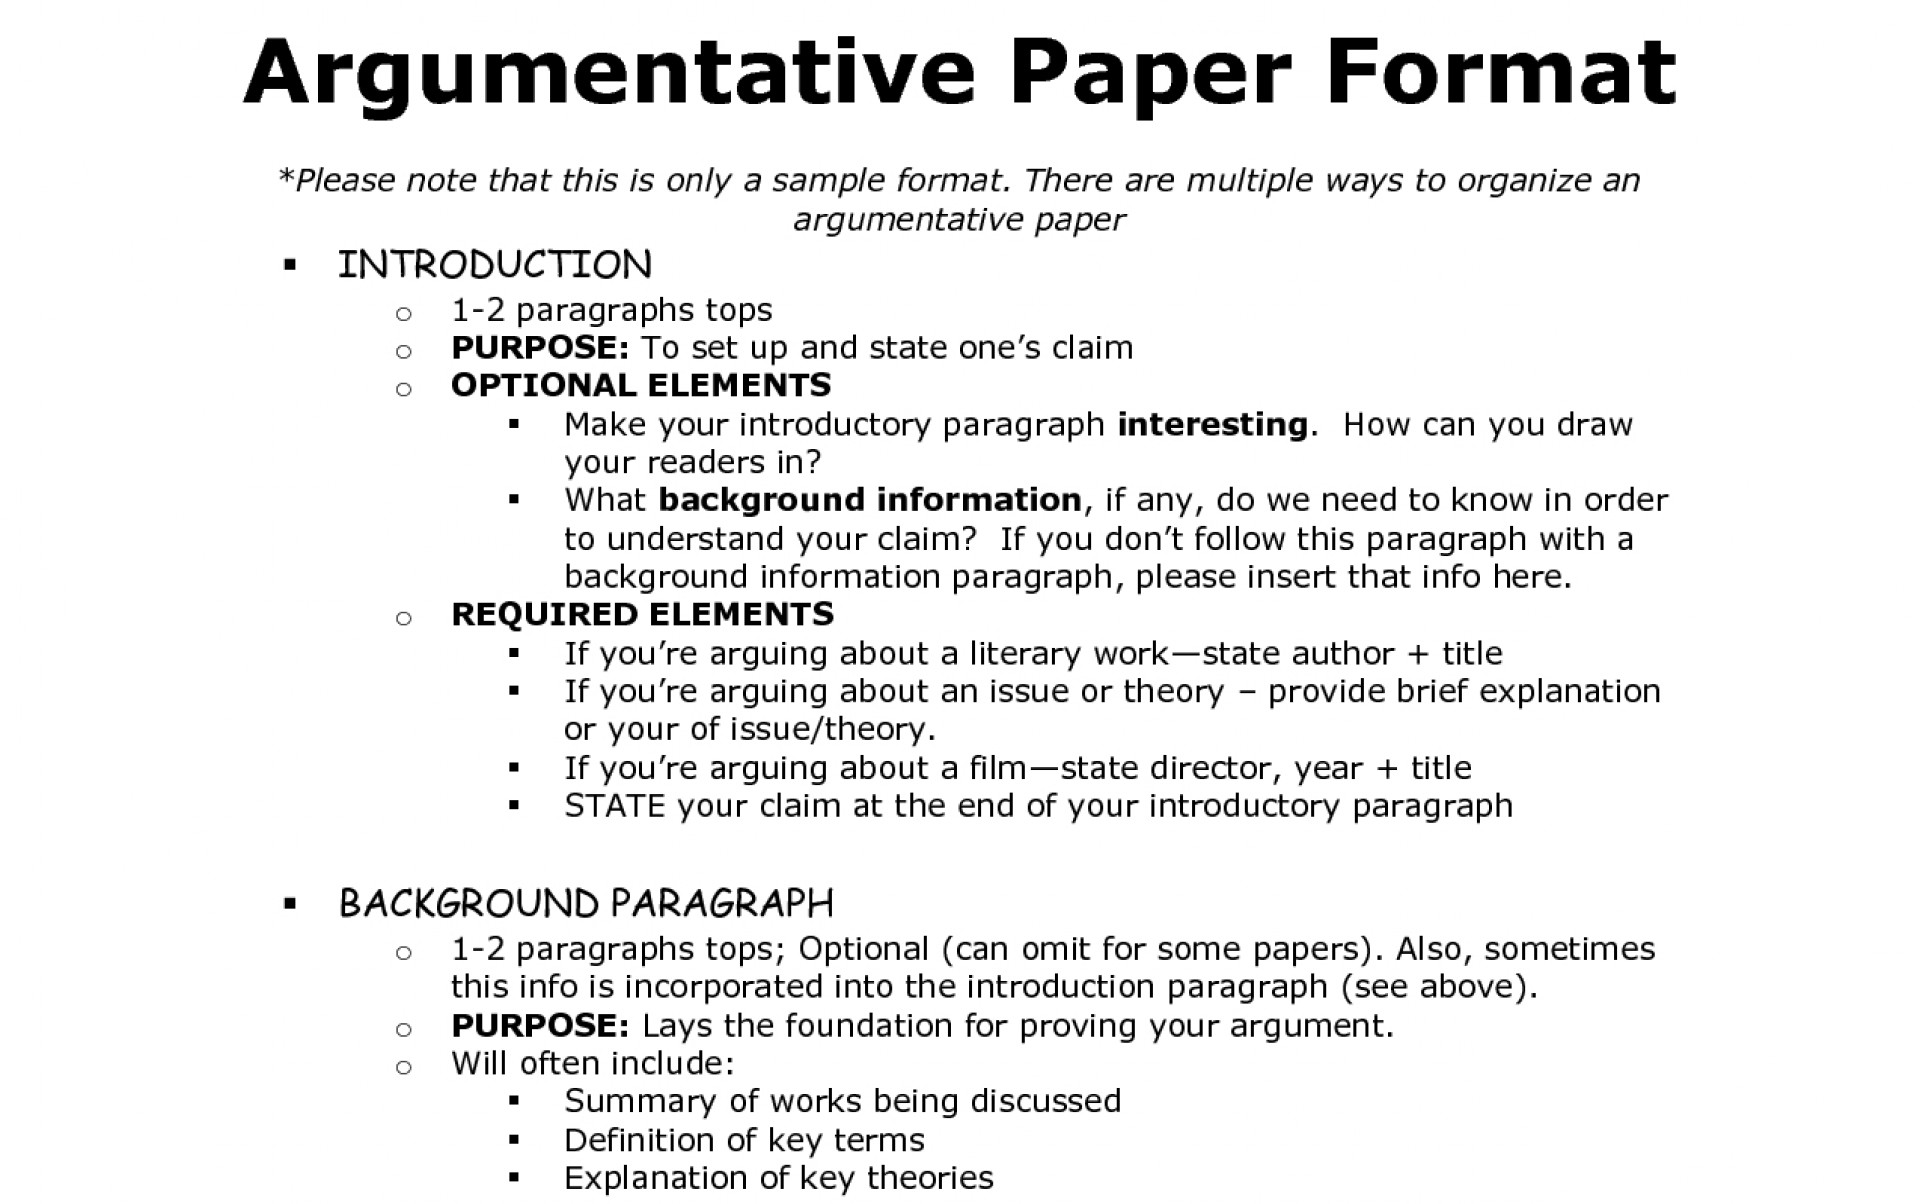 010 How To Conclude An Argumentative Essay Example Conclusion Printables Corner Paragraph Examples For World Of I Write Top Teach Me A Good Step By Ppt Middle School 1920